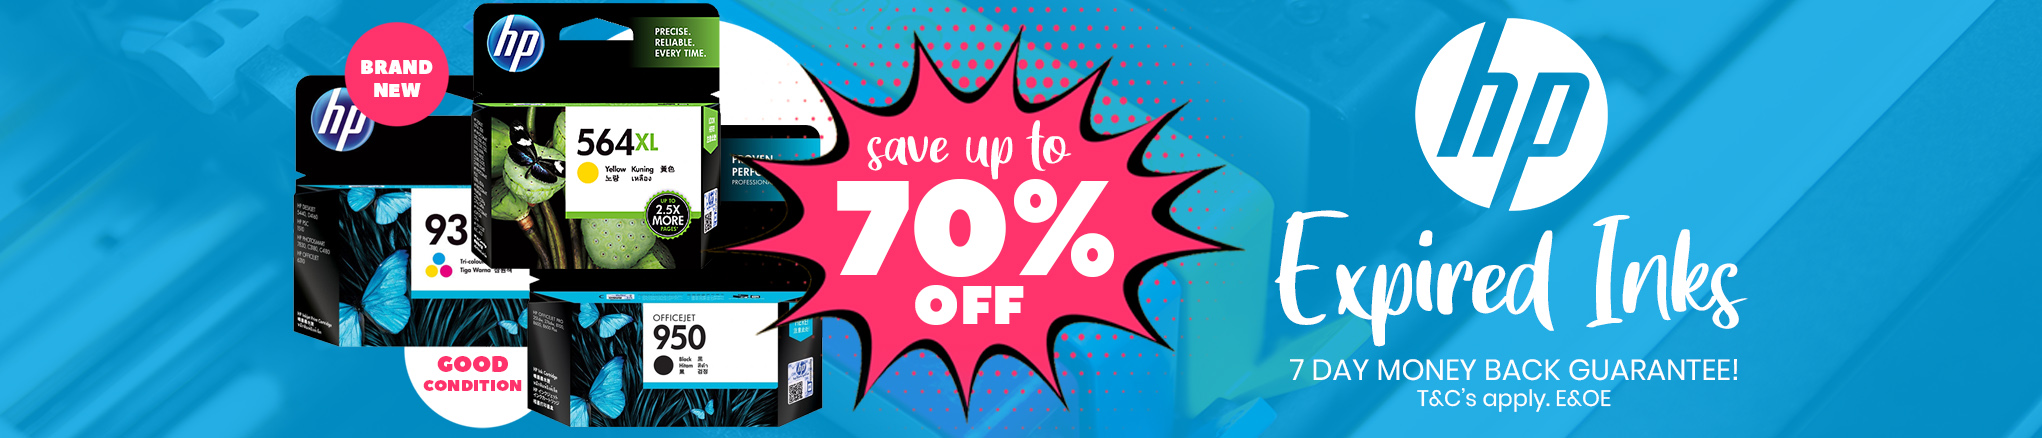 Save up to 70% off HP Expired Inks with 7 Day Money Back!